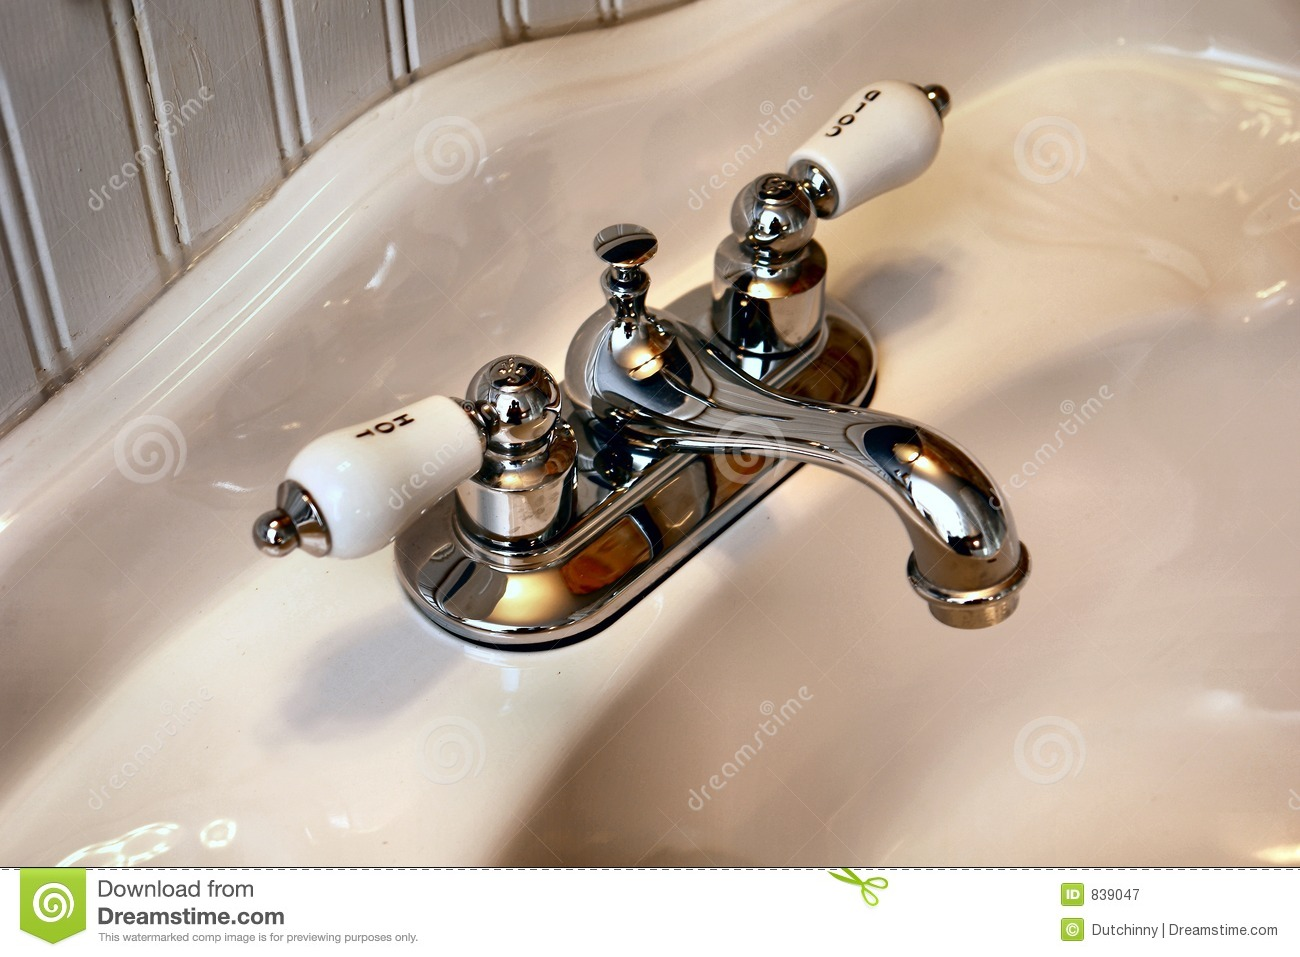 beautiful retro bathroom faucets images - bathroom bedroom